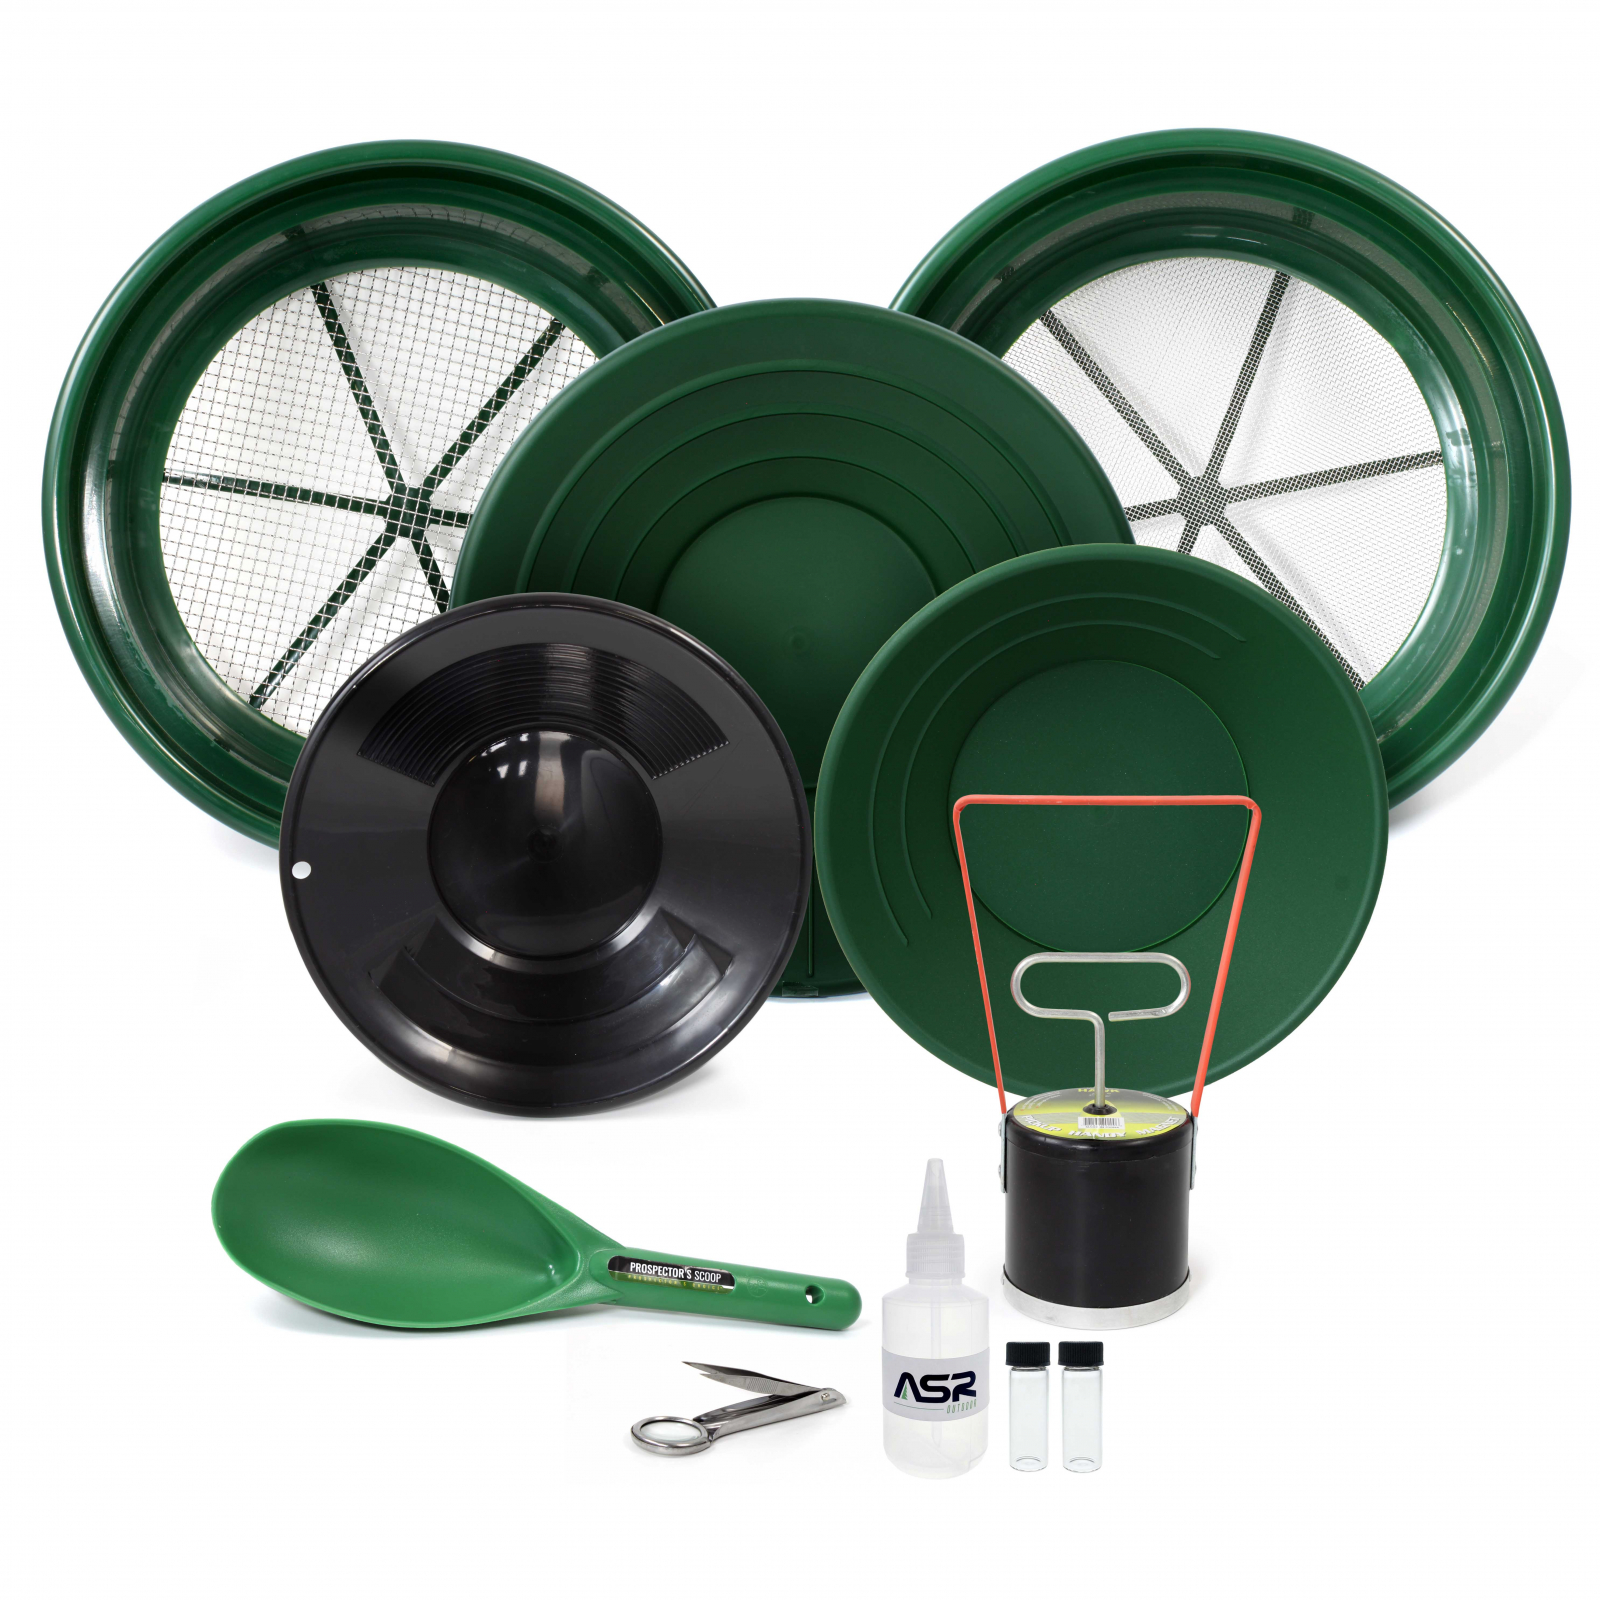 ASR Outdoor Gold Rush Gold Prospecting Kit Classifiers Vials Sifting Pans - 11pc